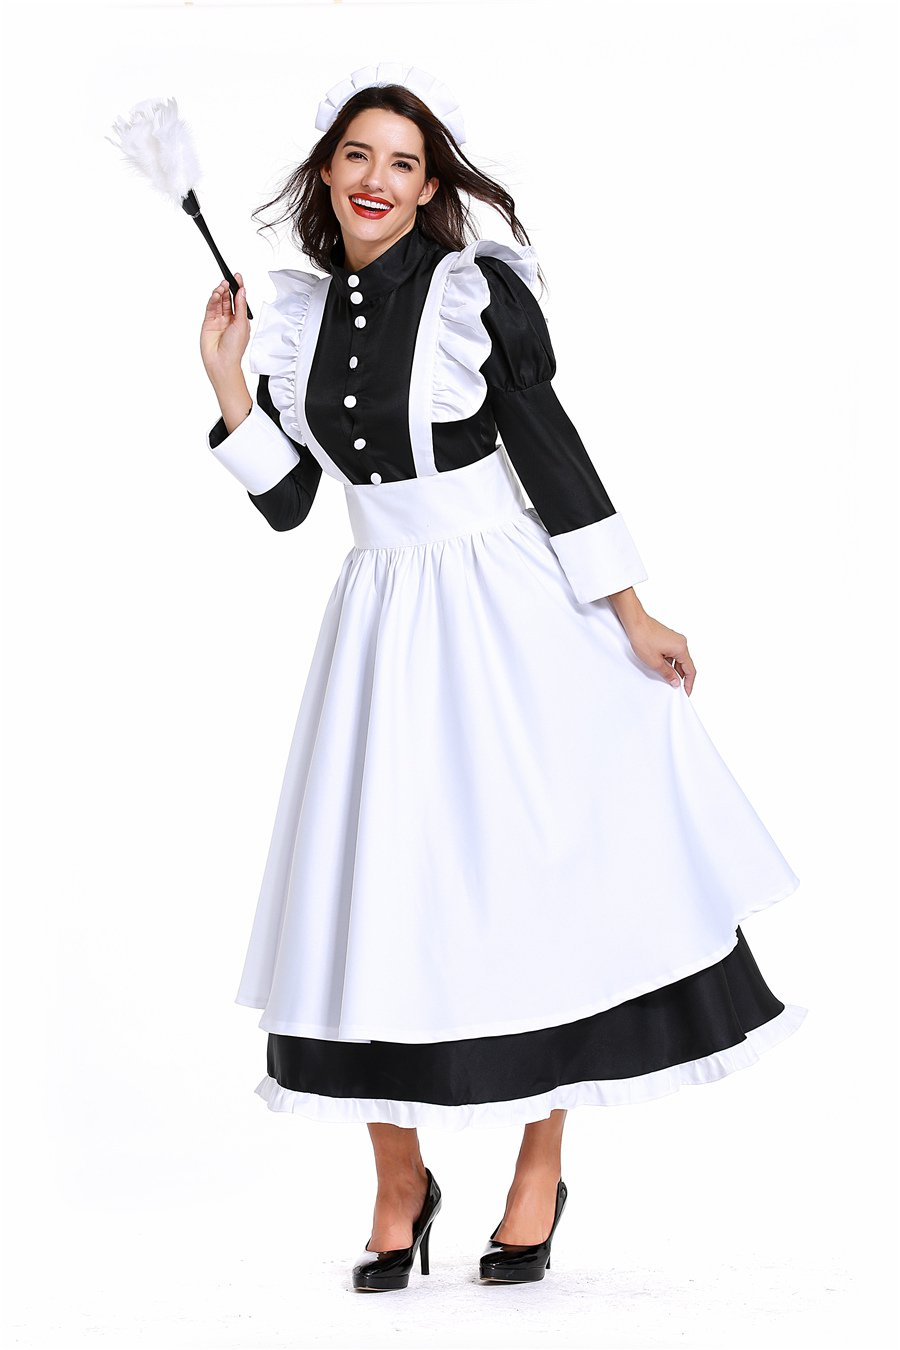 Plus Size 2XL England Cook Costume Housekeeper Uniform Carnival Maid Cosplay Fancy Dress